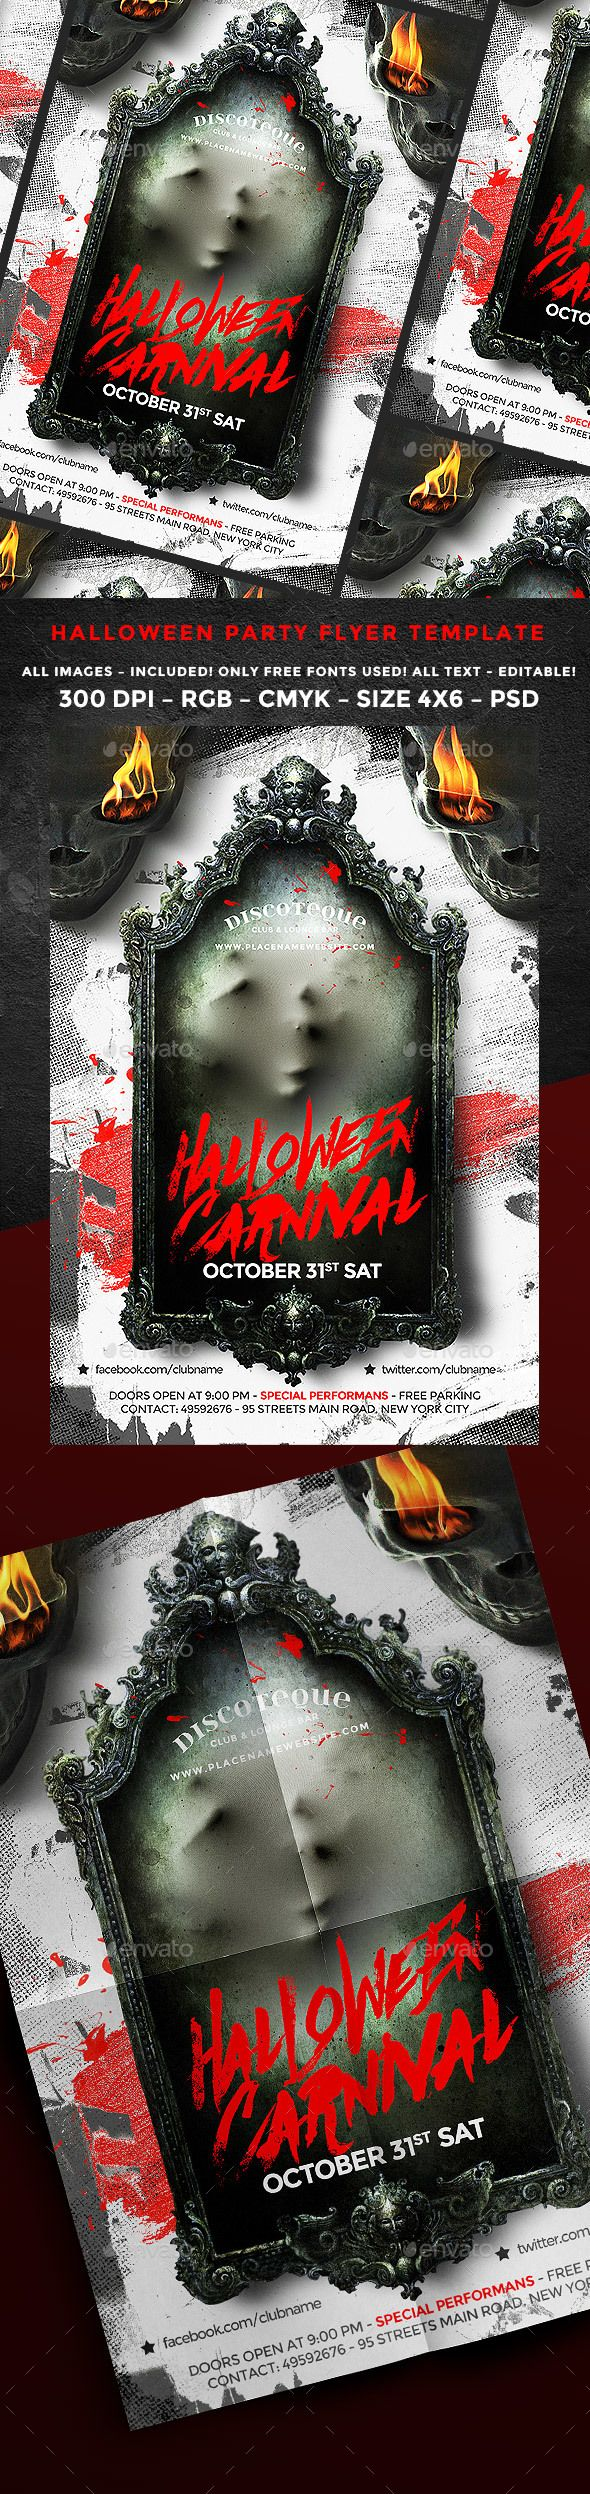 Halloween Flyer — Photoshop PSD #october #zombie • Available here → https://graphicriver.net/item/halloween-flyer/17959825?ref=pxcr